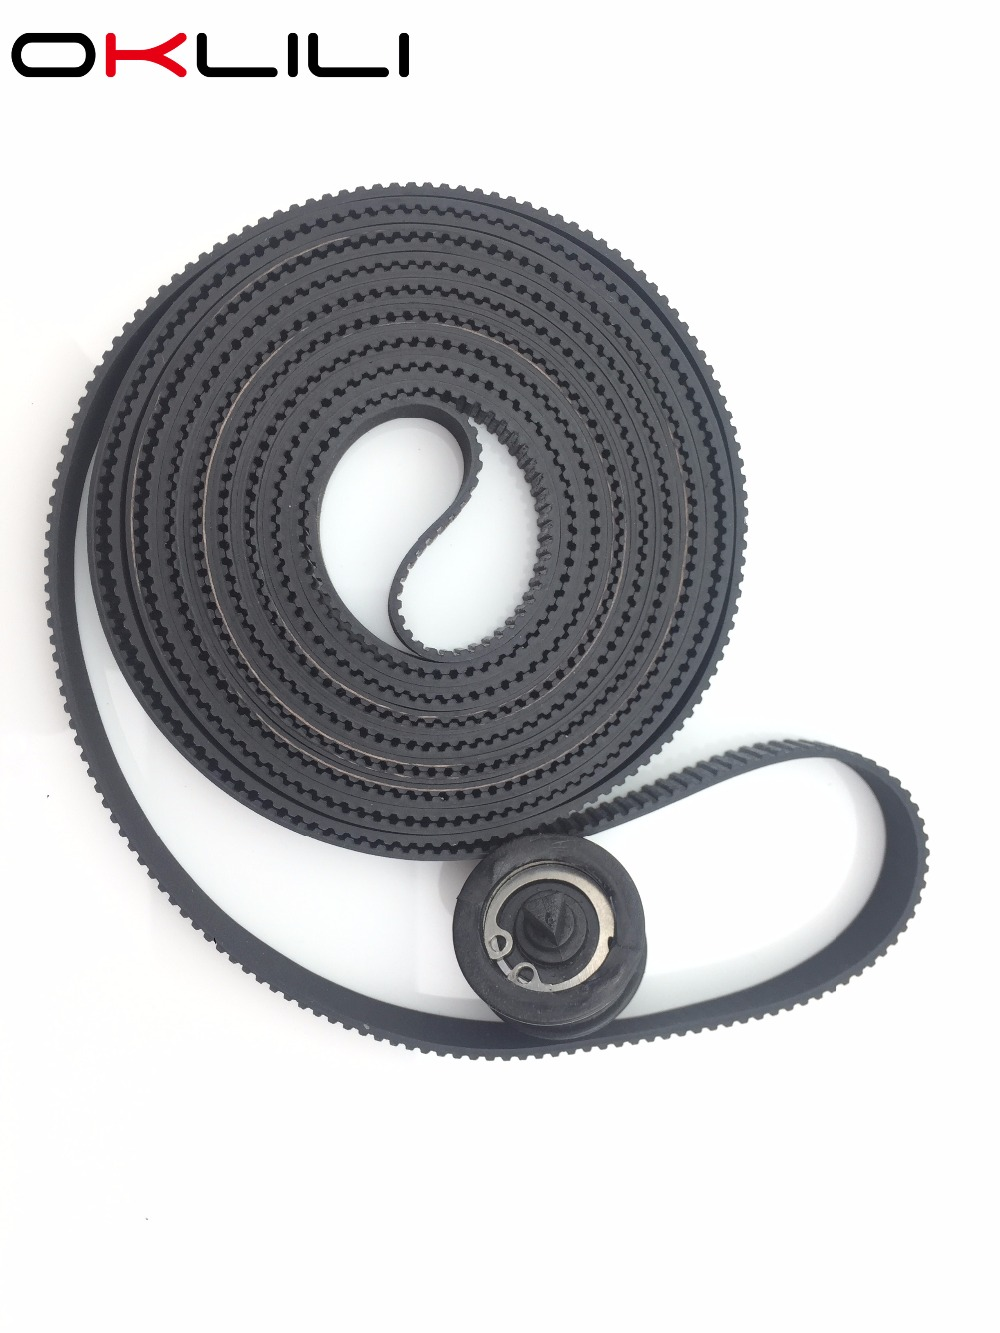 C7770-60014 Carriage Belt 42 B0 Size with Pulley for HP DesignJet 500 500PS 800 800PS 510 510PS 815 CC800PS 820 815MFP 820MFP christmas snowman photography photo prop studio background vinyl backdrop 7x5ft